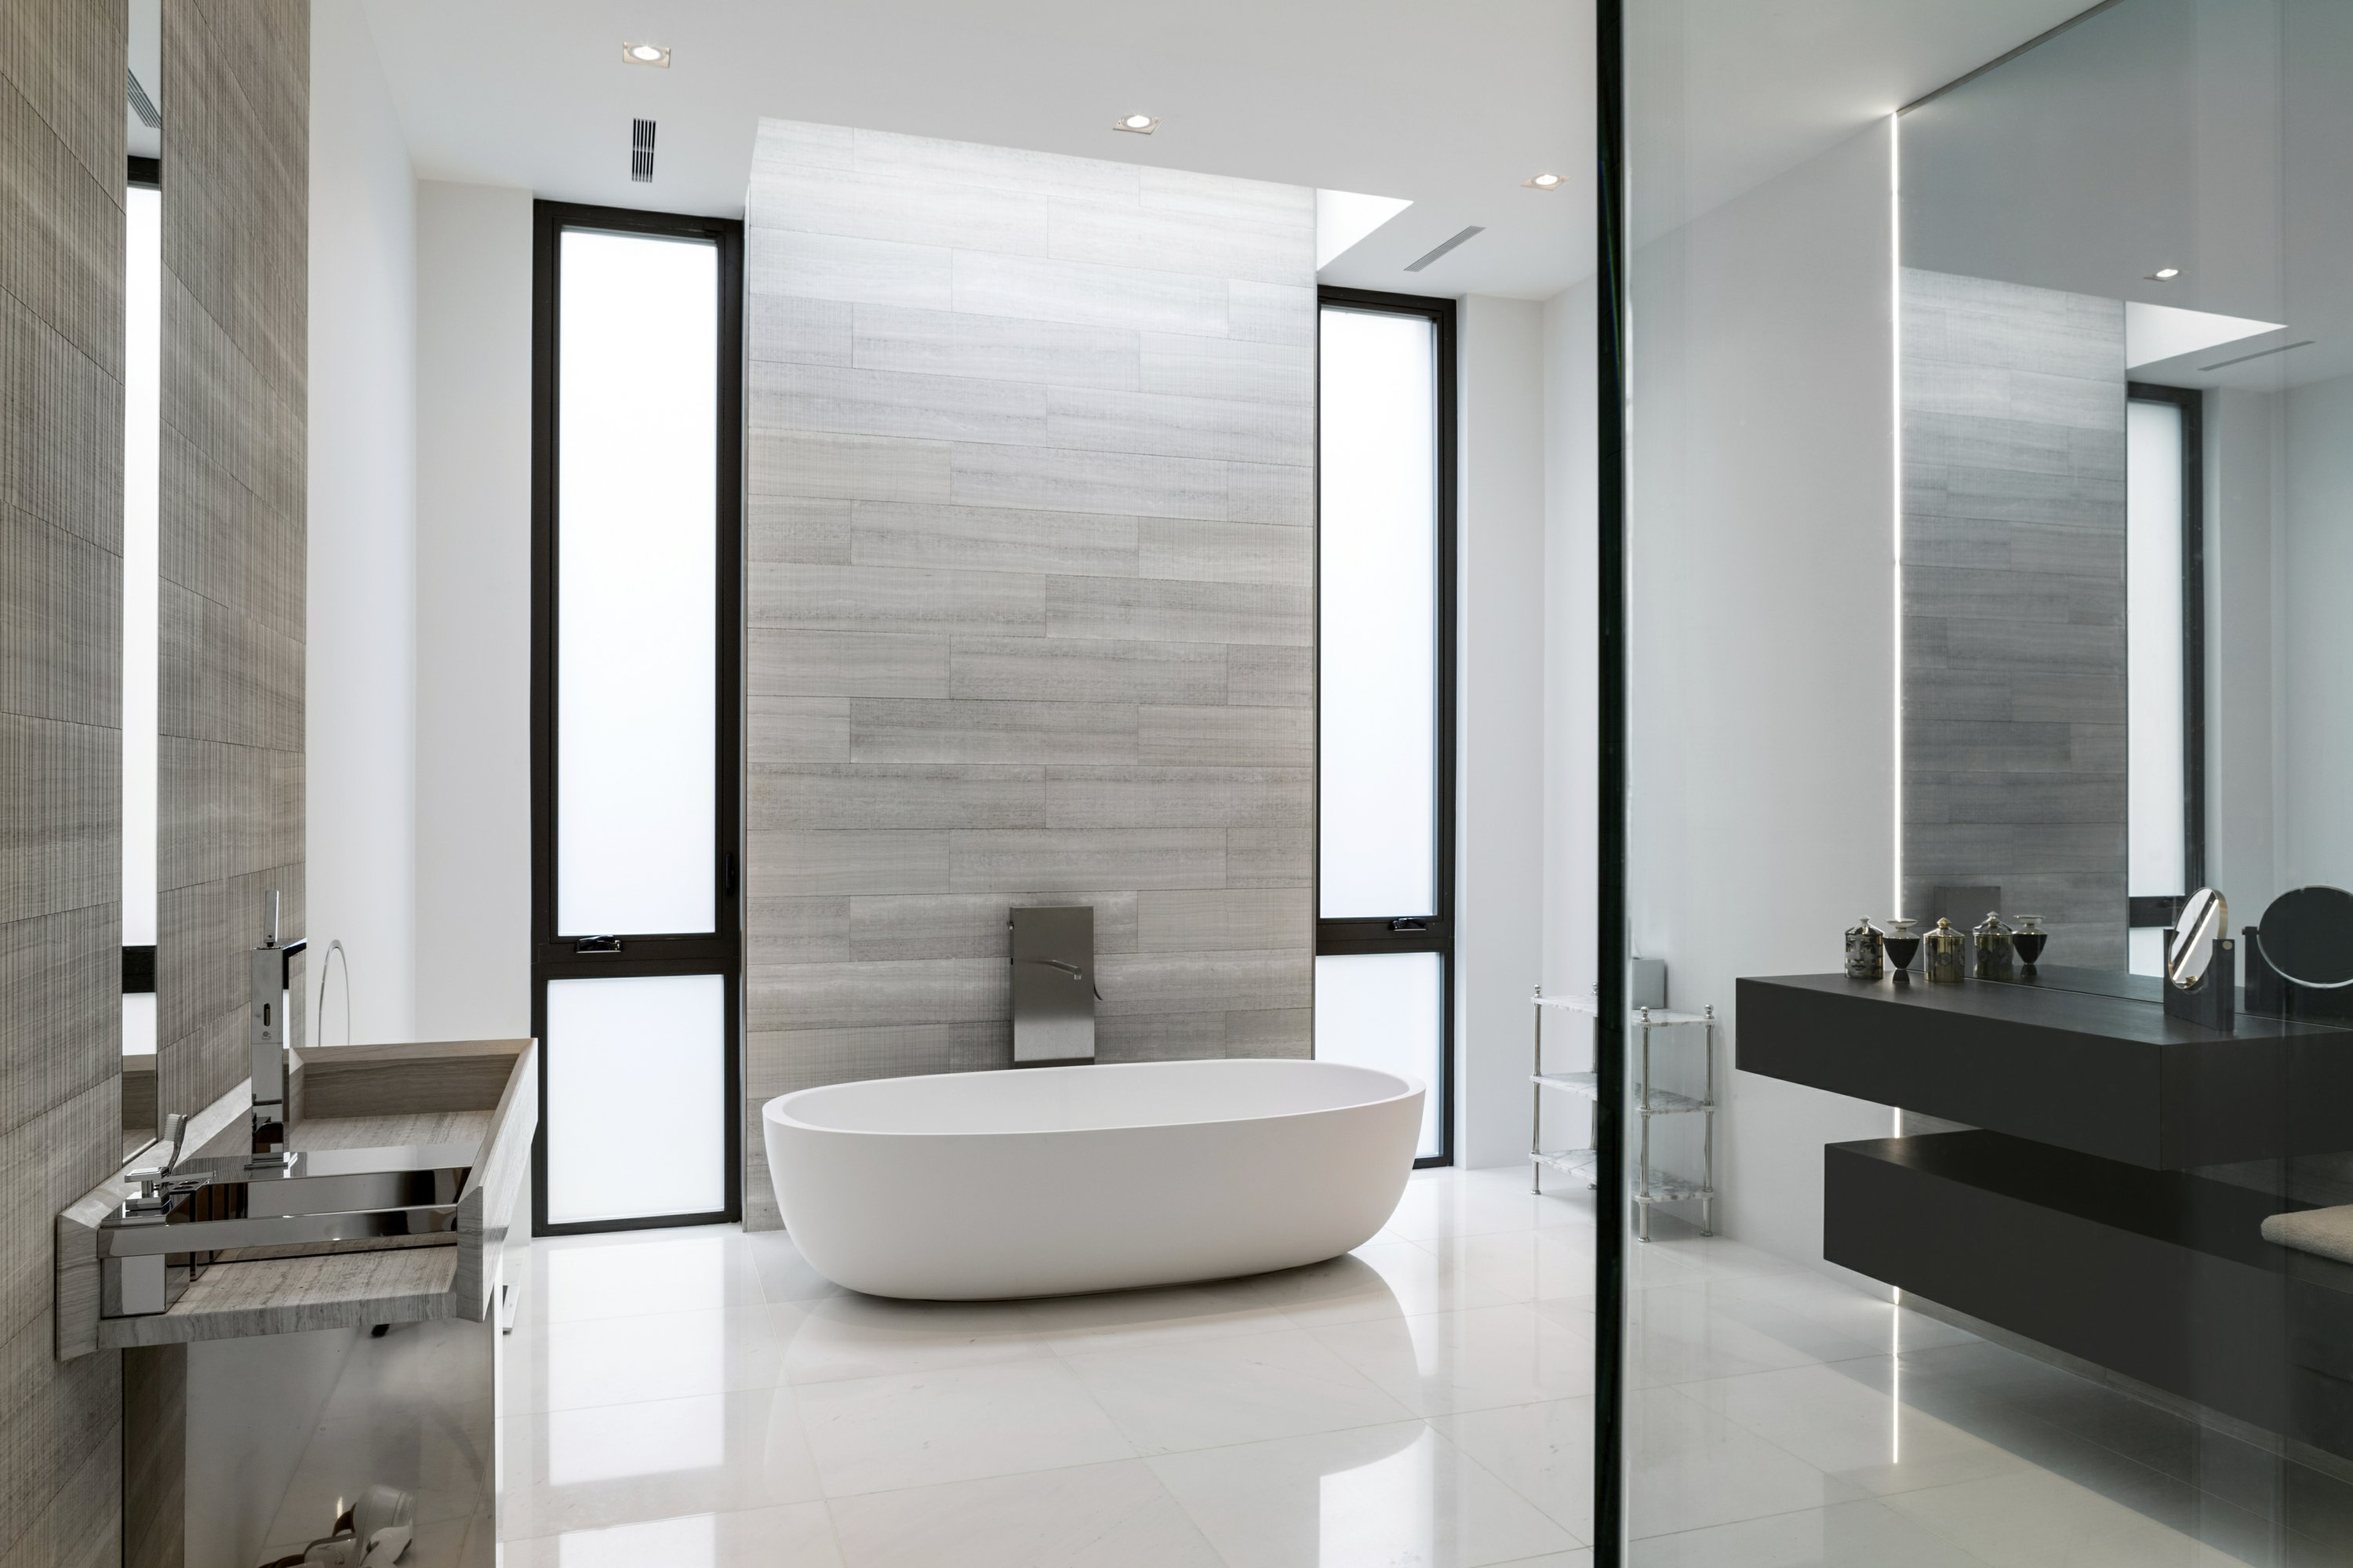 32 Best Master Bathroom Ideas And Designs For 2019: ASK A DESIGNER: Small Touches Create A Great Master Bathroom